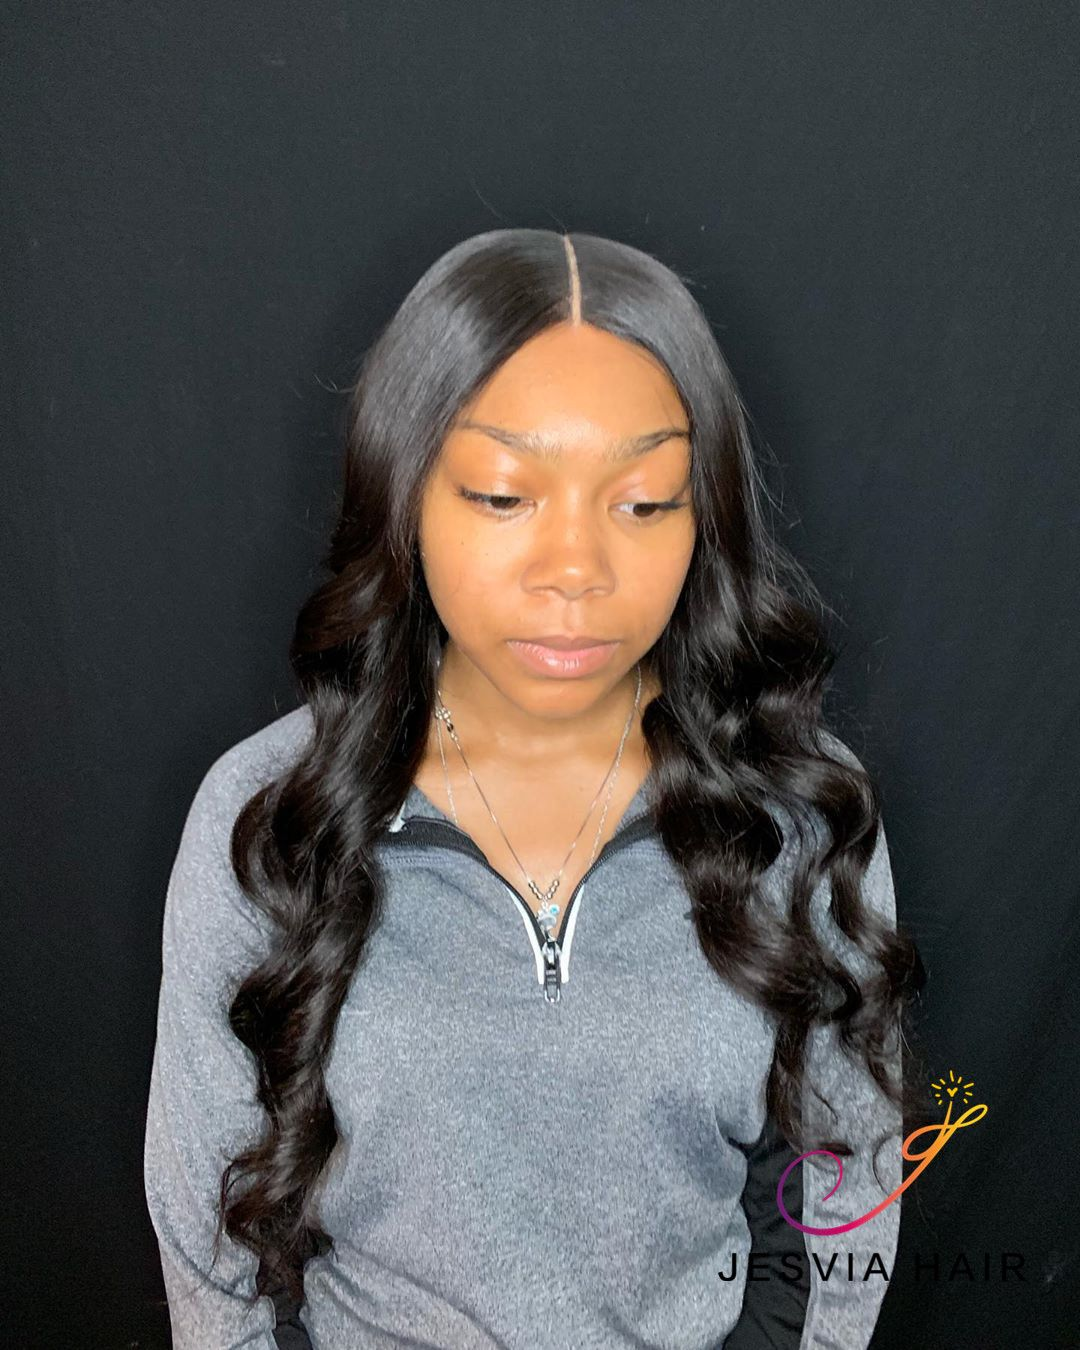 Black Wigs For Black Women Kima Crochet Hair Big Waves Short Hair Wavy Wigs African American 360 540 And 720 Waves